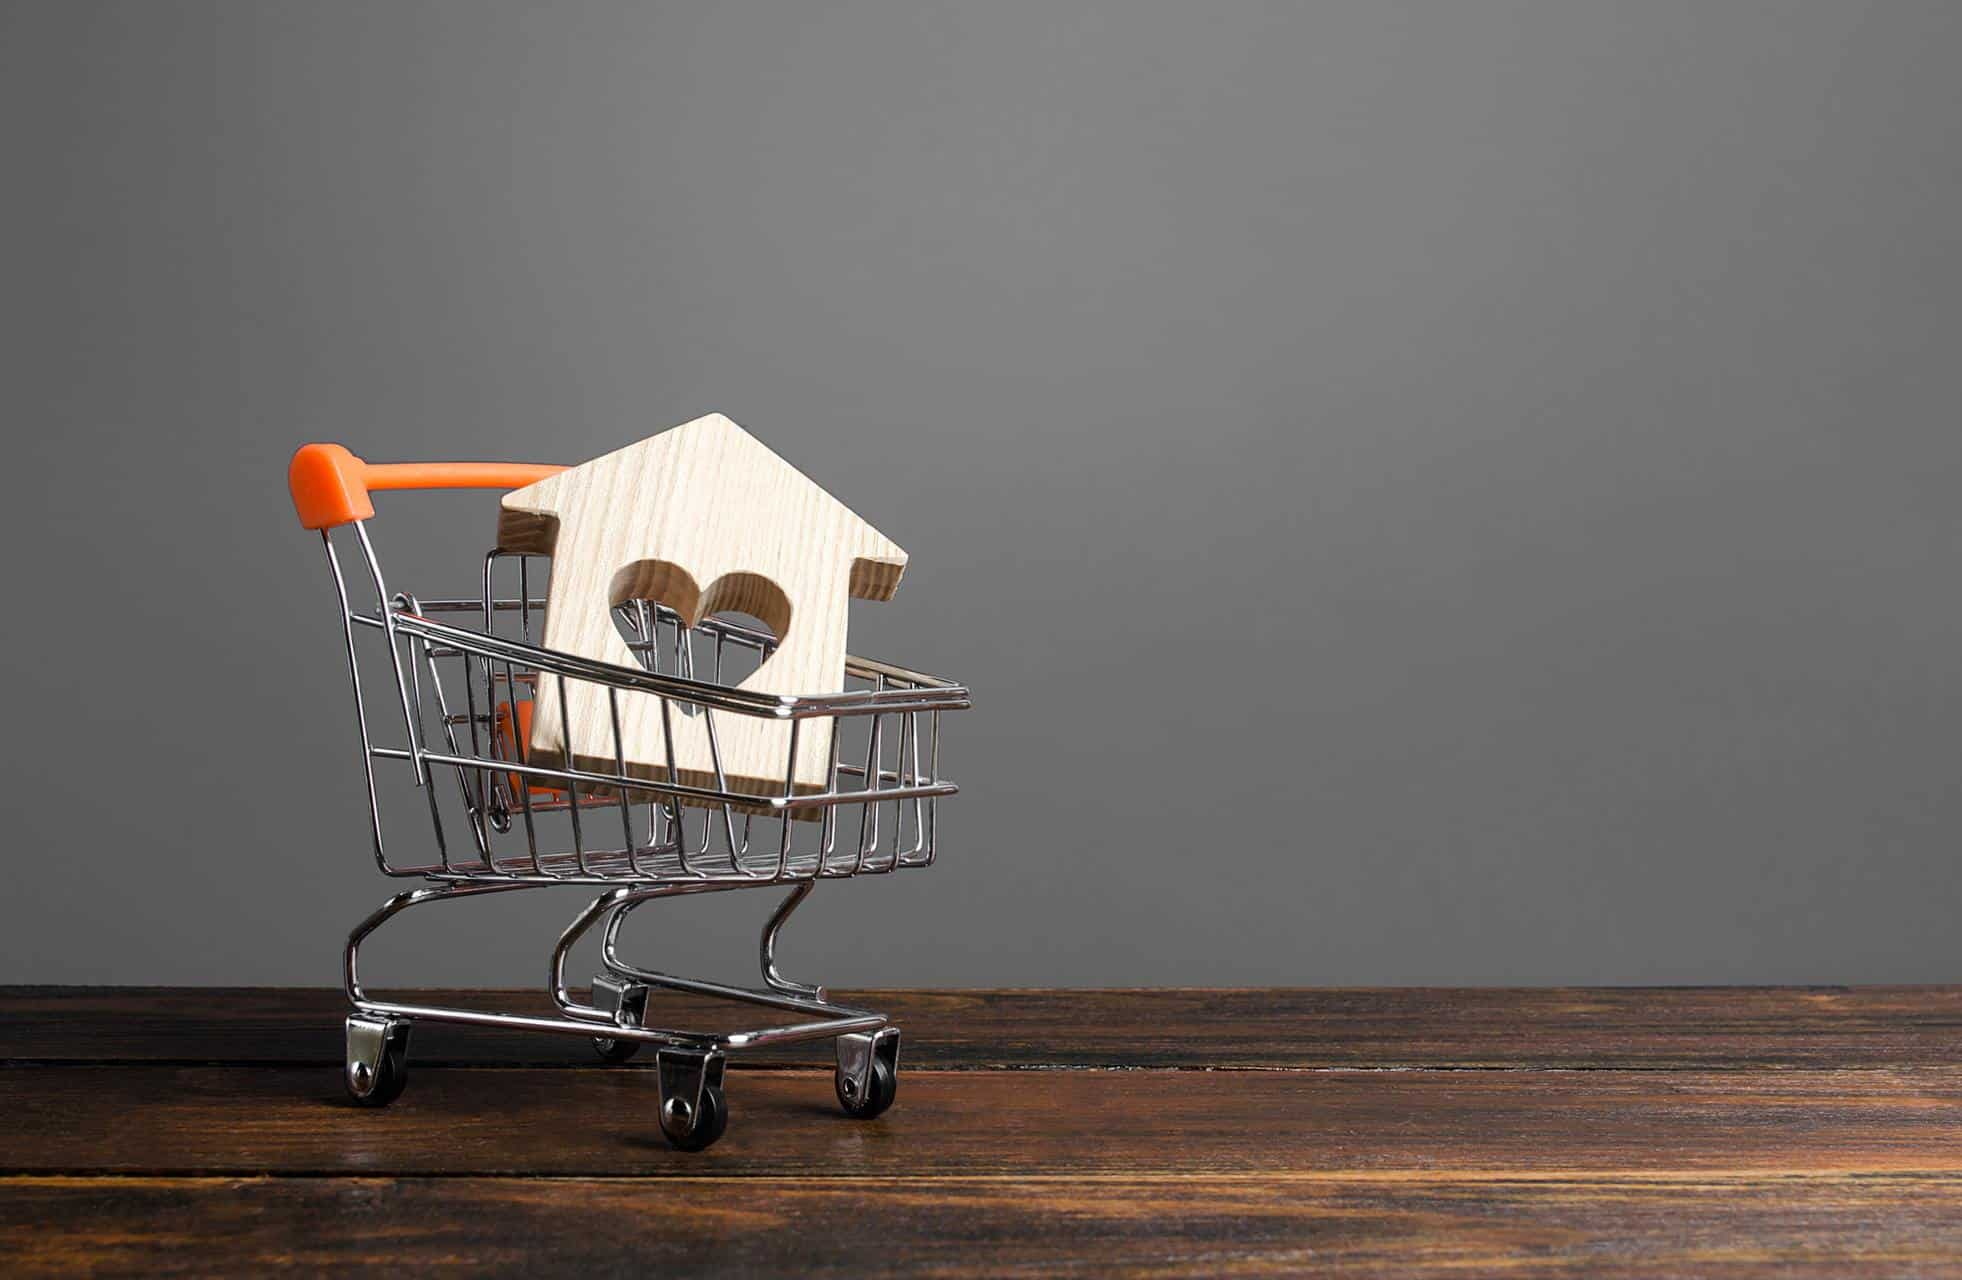 tiny wooden house shape with a heart in a mini shopping cart to reflect blog topic, titled mortgage renewal: shopping for a better mortgage rate?